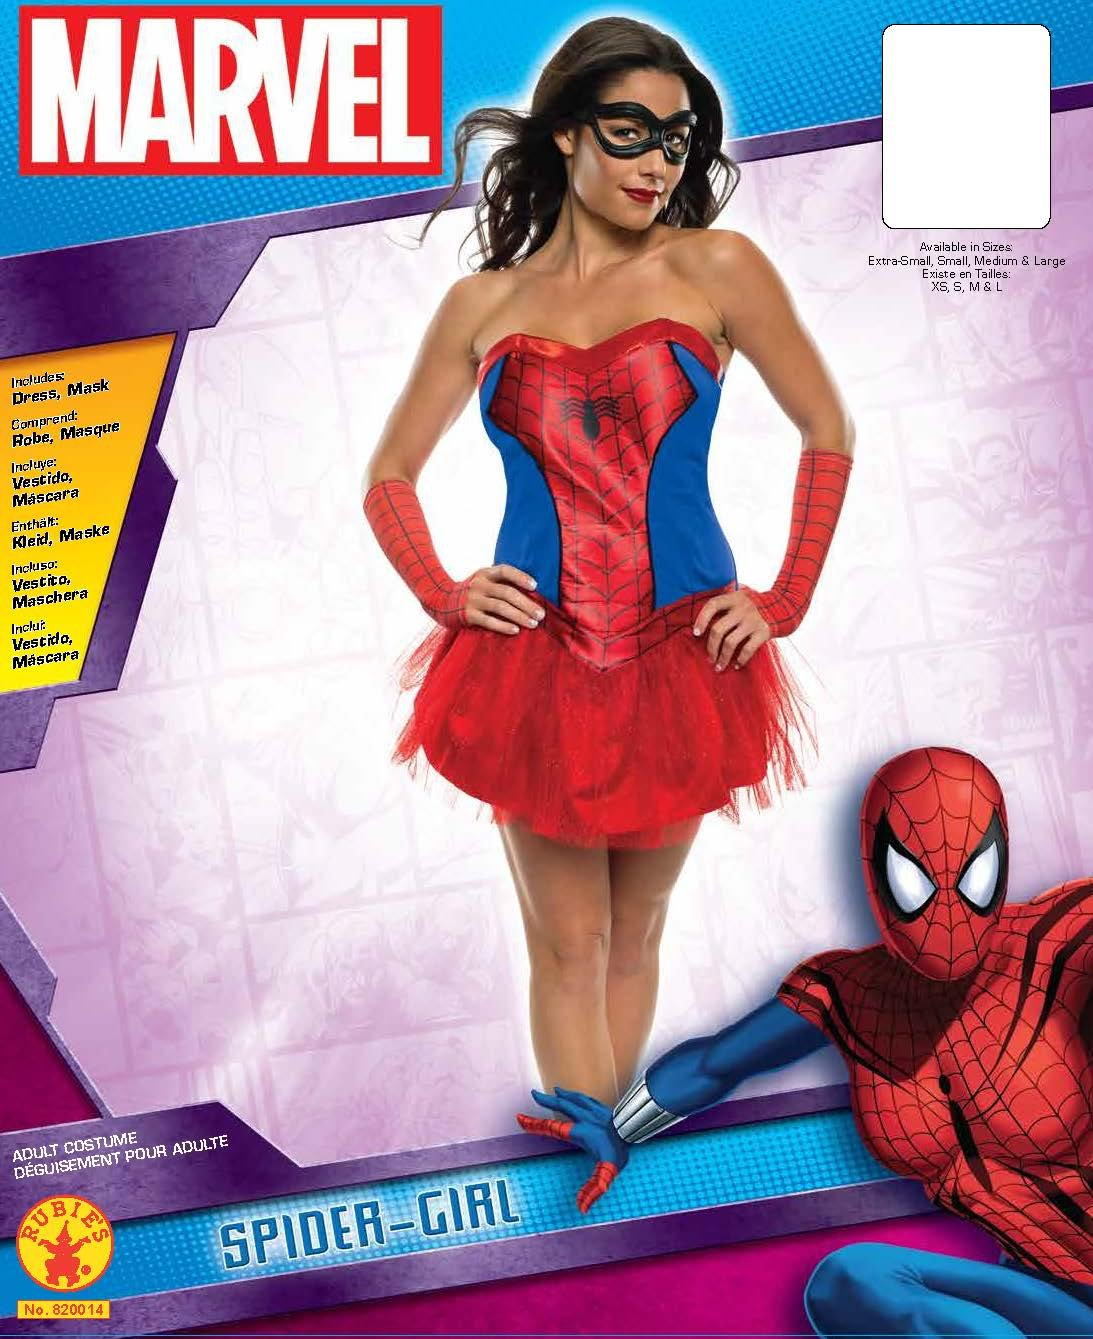 Costume Marvel Spidergirl Kit Déguisements Femme f7g6yYb